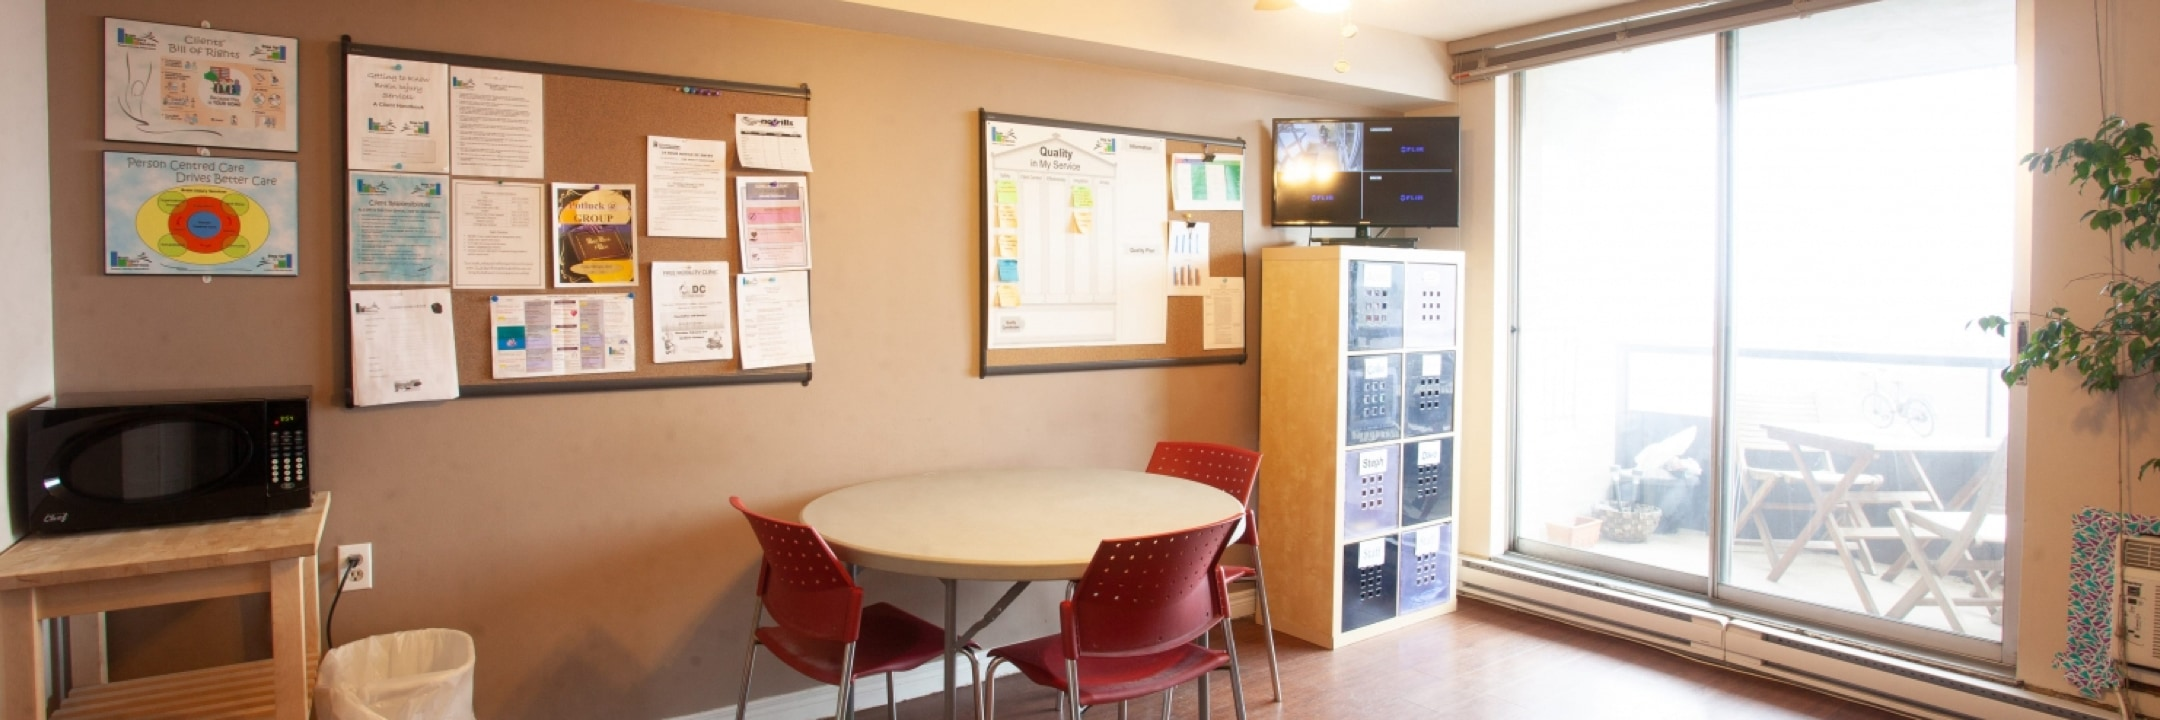 Bright room with beige painted walls has a round table and three red chairs against the wall in the middle. A black microwave sits on a wooden stand on the left hand side, and three bulletin boards with organized notices attached are hung spaced out along the wall. A filing unit has a tv screen sitting on top in the corner of the room near large window sliding doors that lead to an outdoor patio.